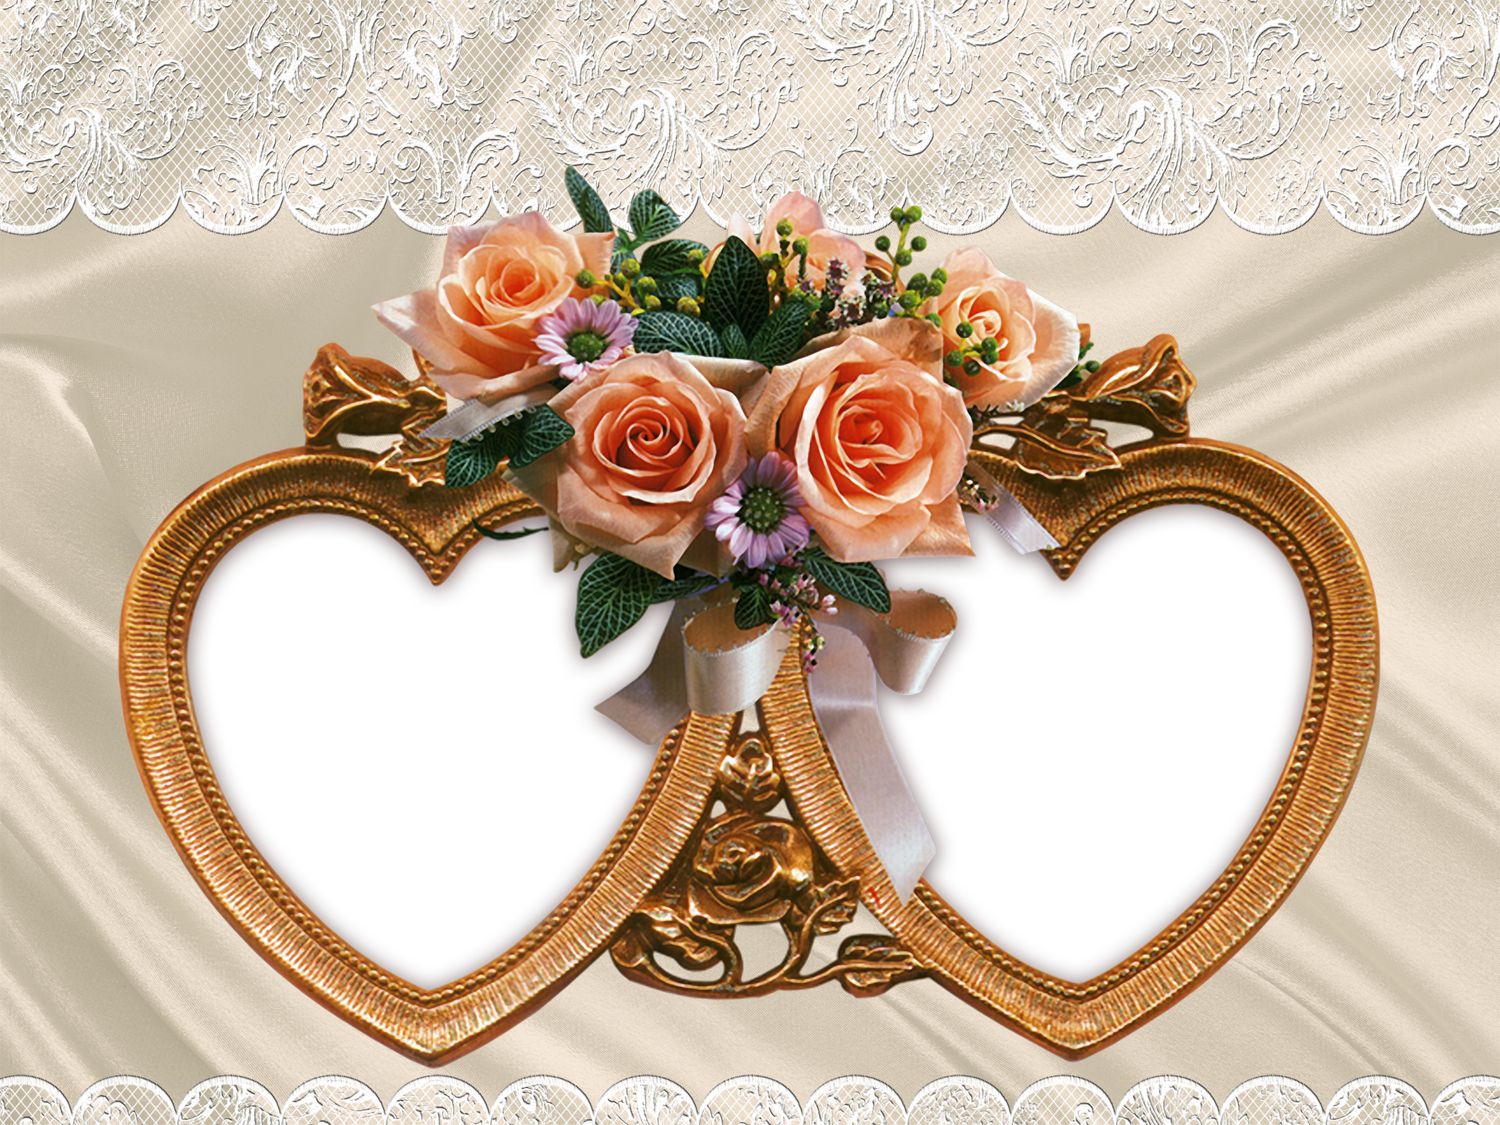 Free Download Wedding Photo Frames Background in Full HD